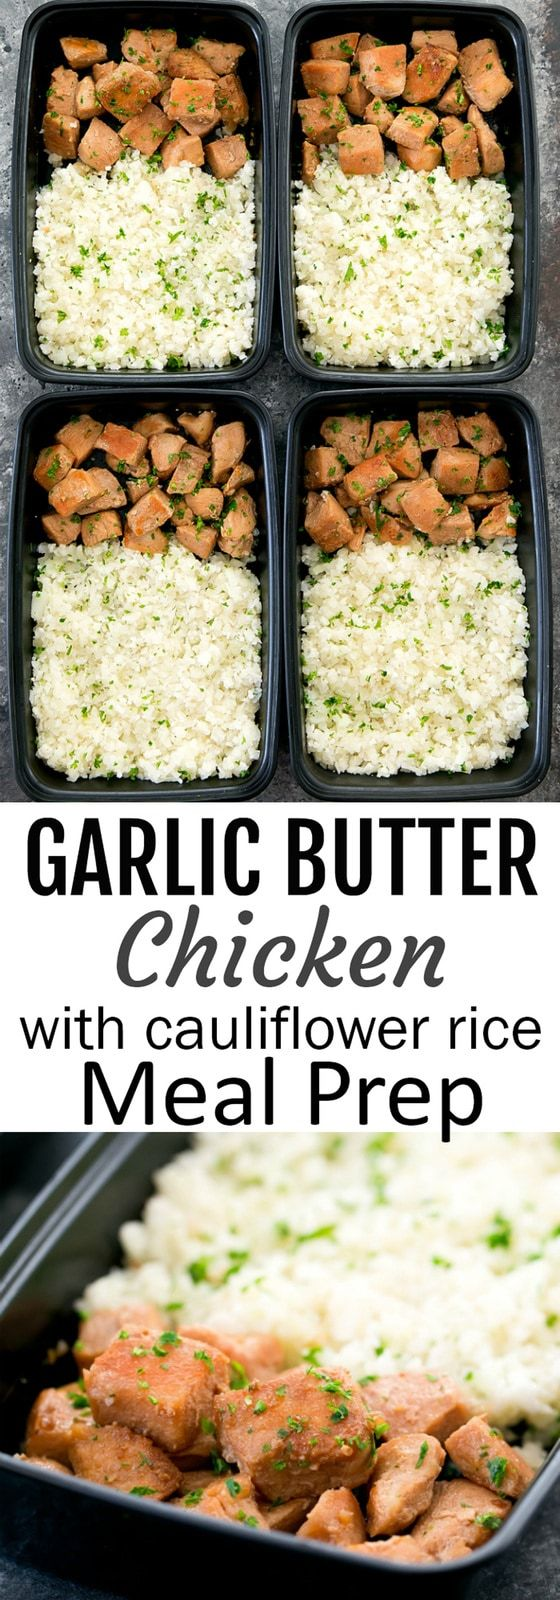 Honey Garlic Butter Chicken with Cauliflower Rice Meal Prep #mealprepplans